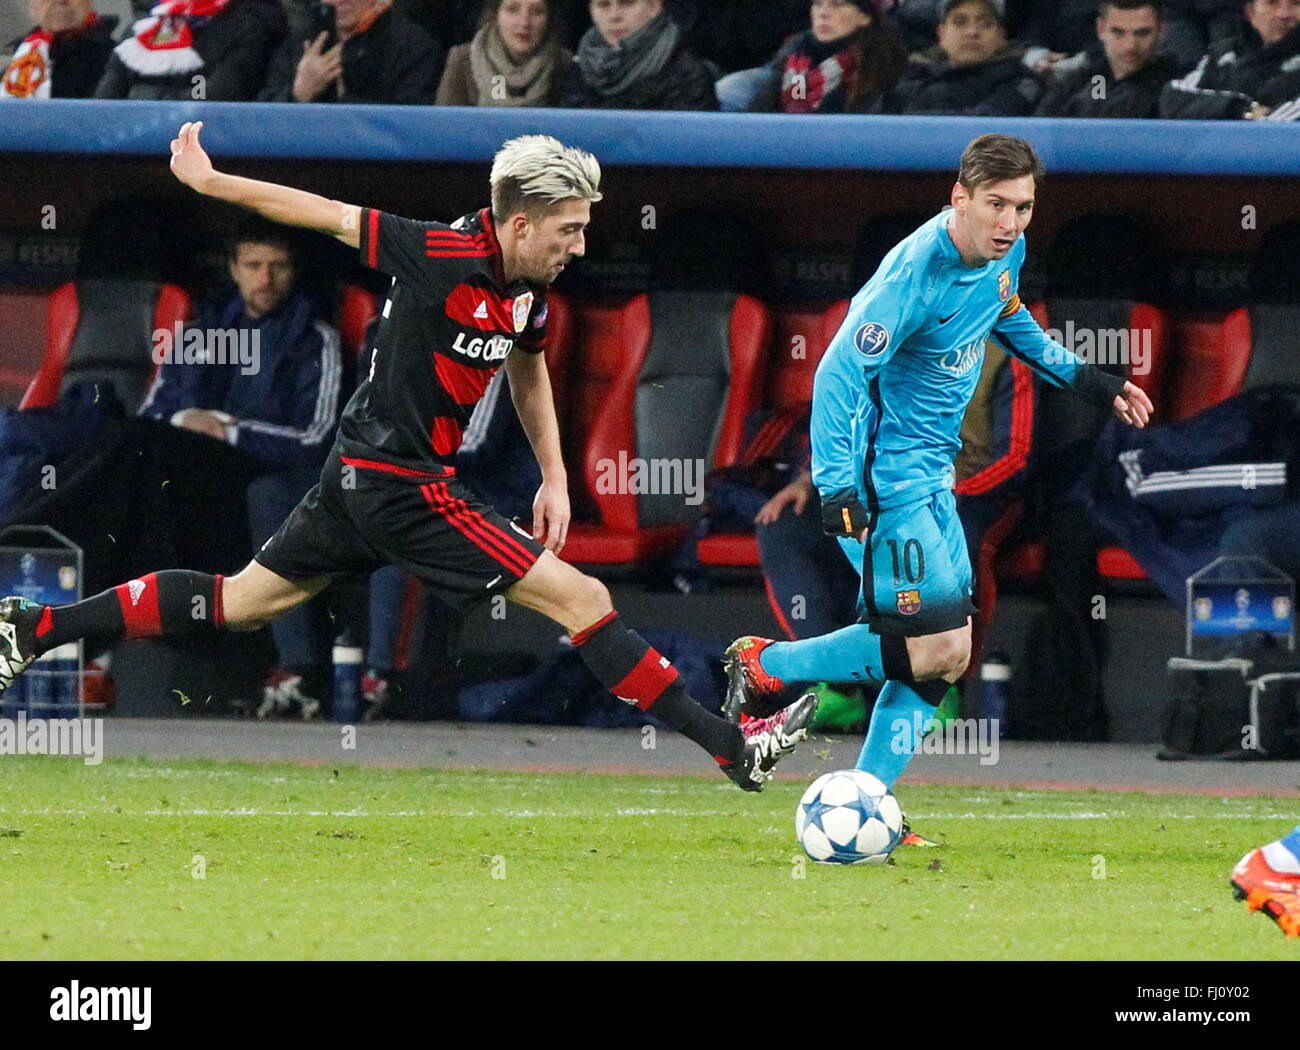 Kevin Kampl during the champion league match Bayer Leverkusen - FC Barcelona December 9, 2015 in the Bay Arena - Stock Image